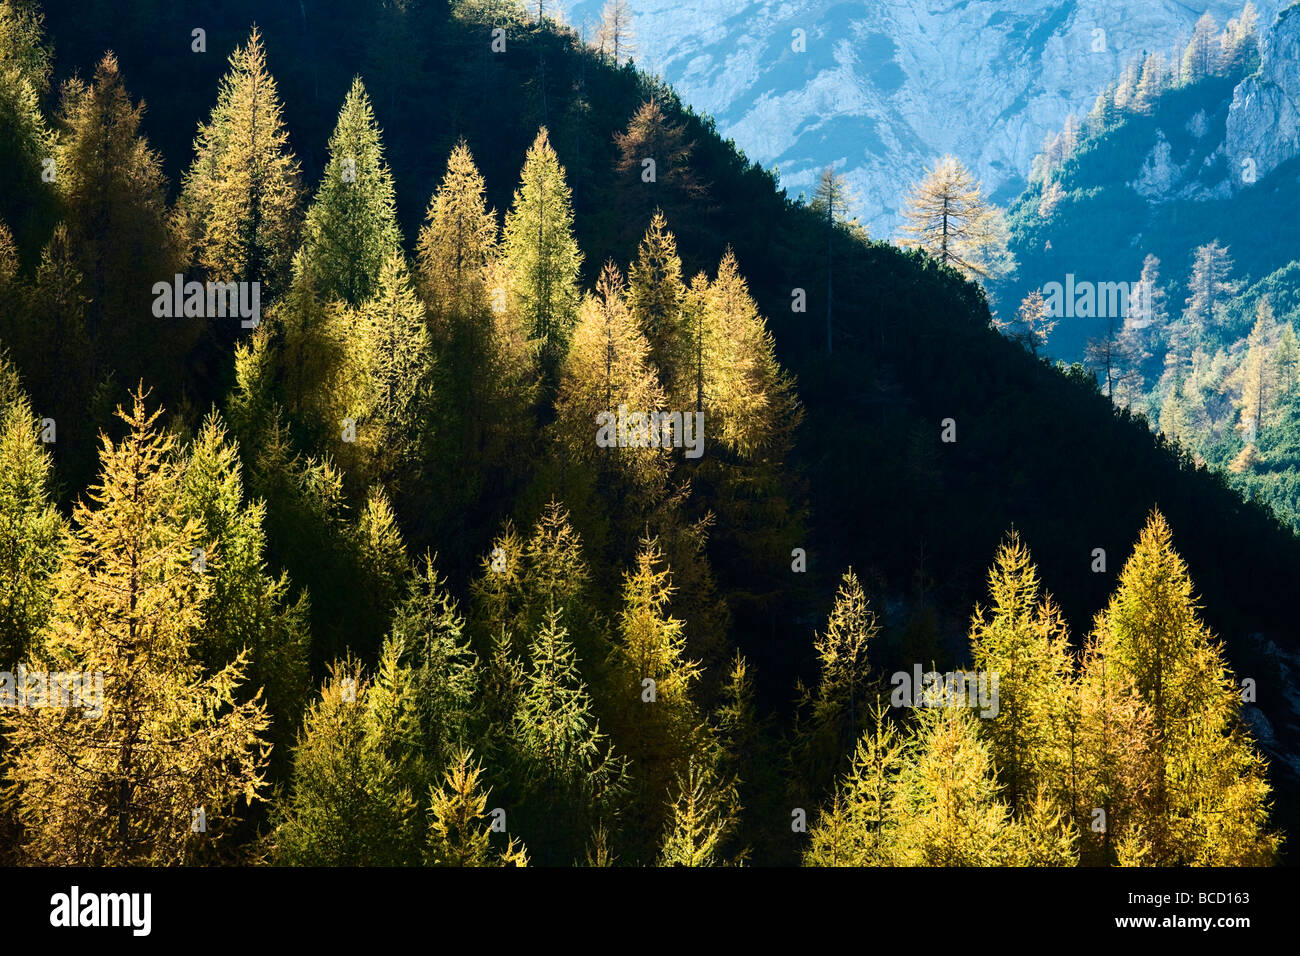 LARCH TREES in autumn. Visic Pass. Triglav National Park. Julian Alps. Slovenia - Stock Image